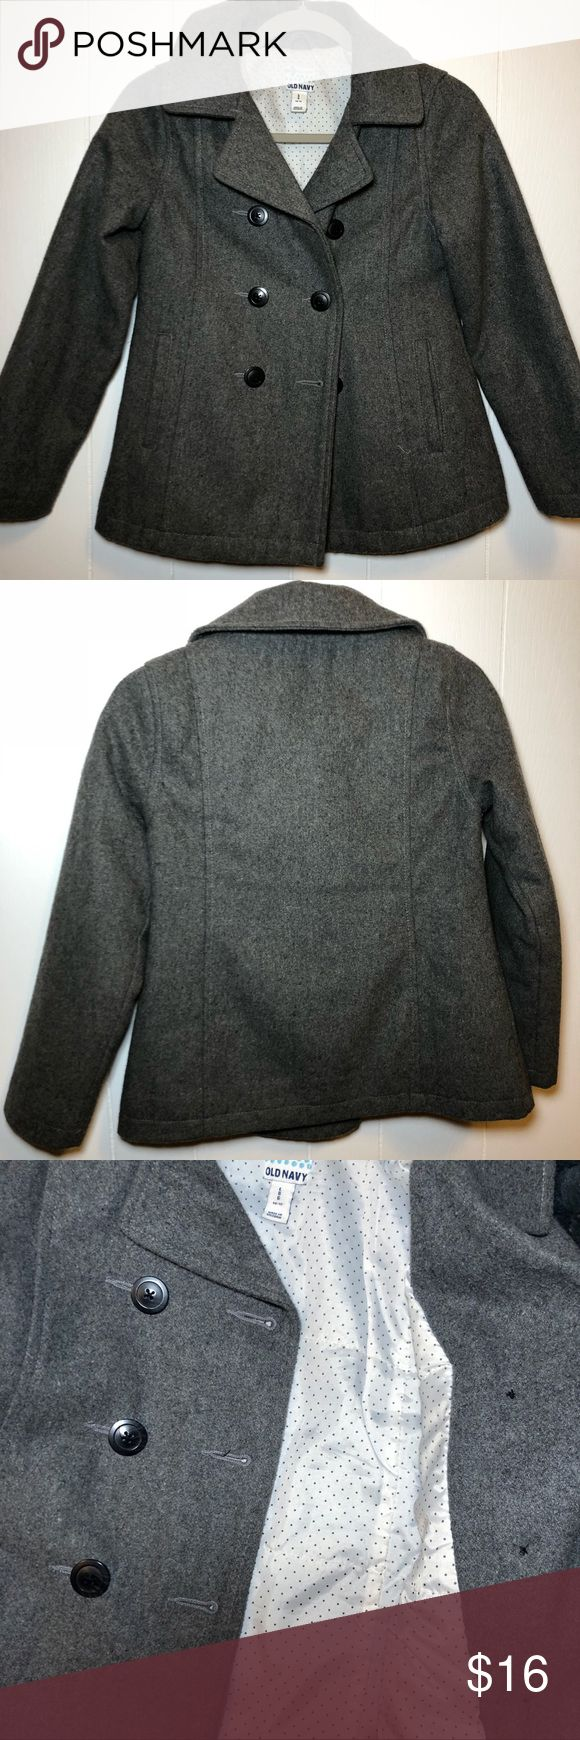 Old Navy Girls Peacoat Gray Wool Size 10-12 Adorable gray wool dress coat for girls • cream colored satin lining with black dots • Shell 40% recycled wool & other materials • lining 100% polyester • excellent condition Old Navy Jackets & Coats Pea Coats